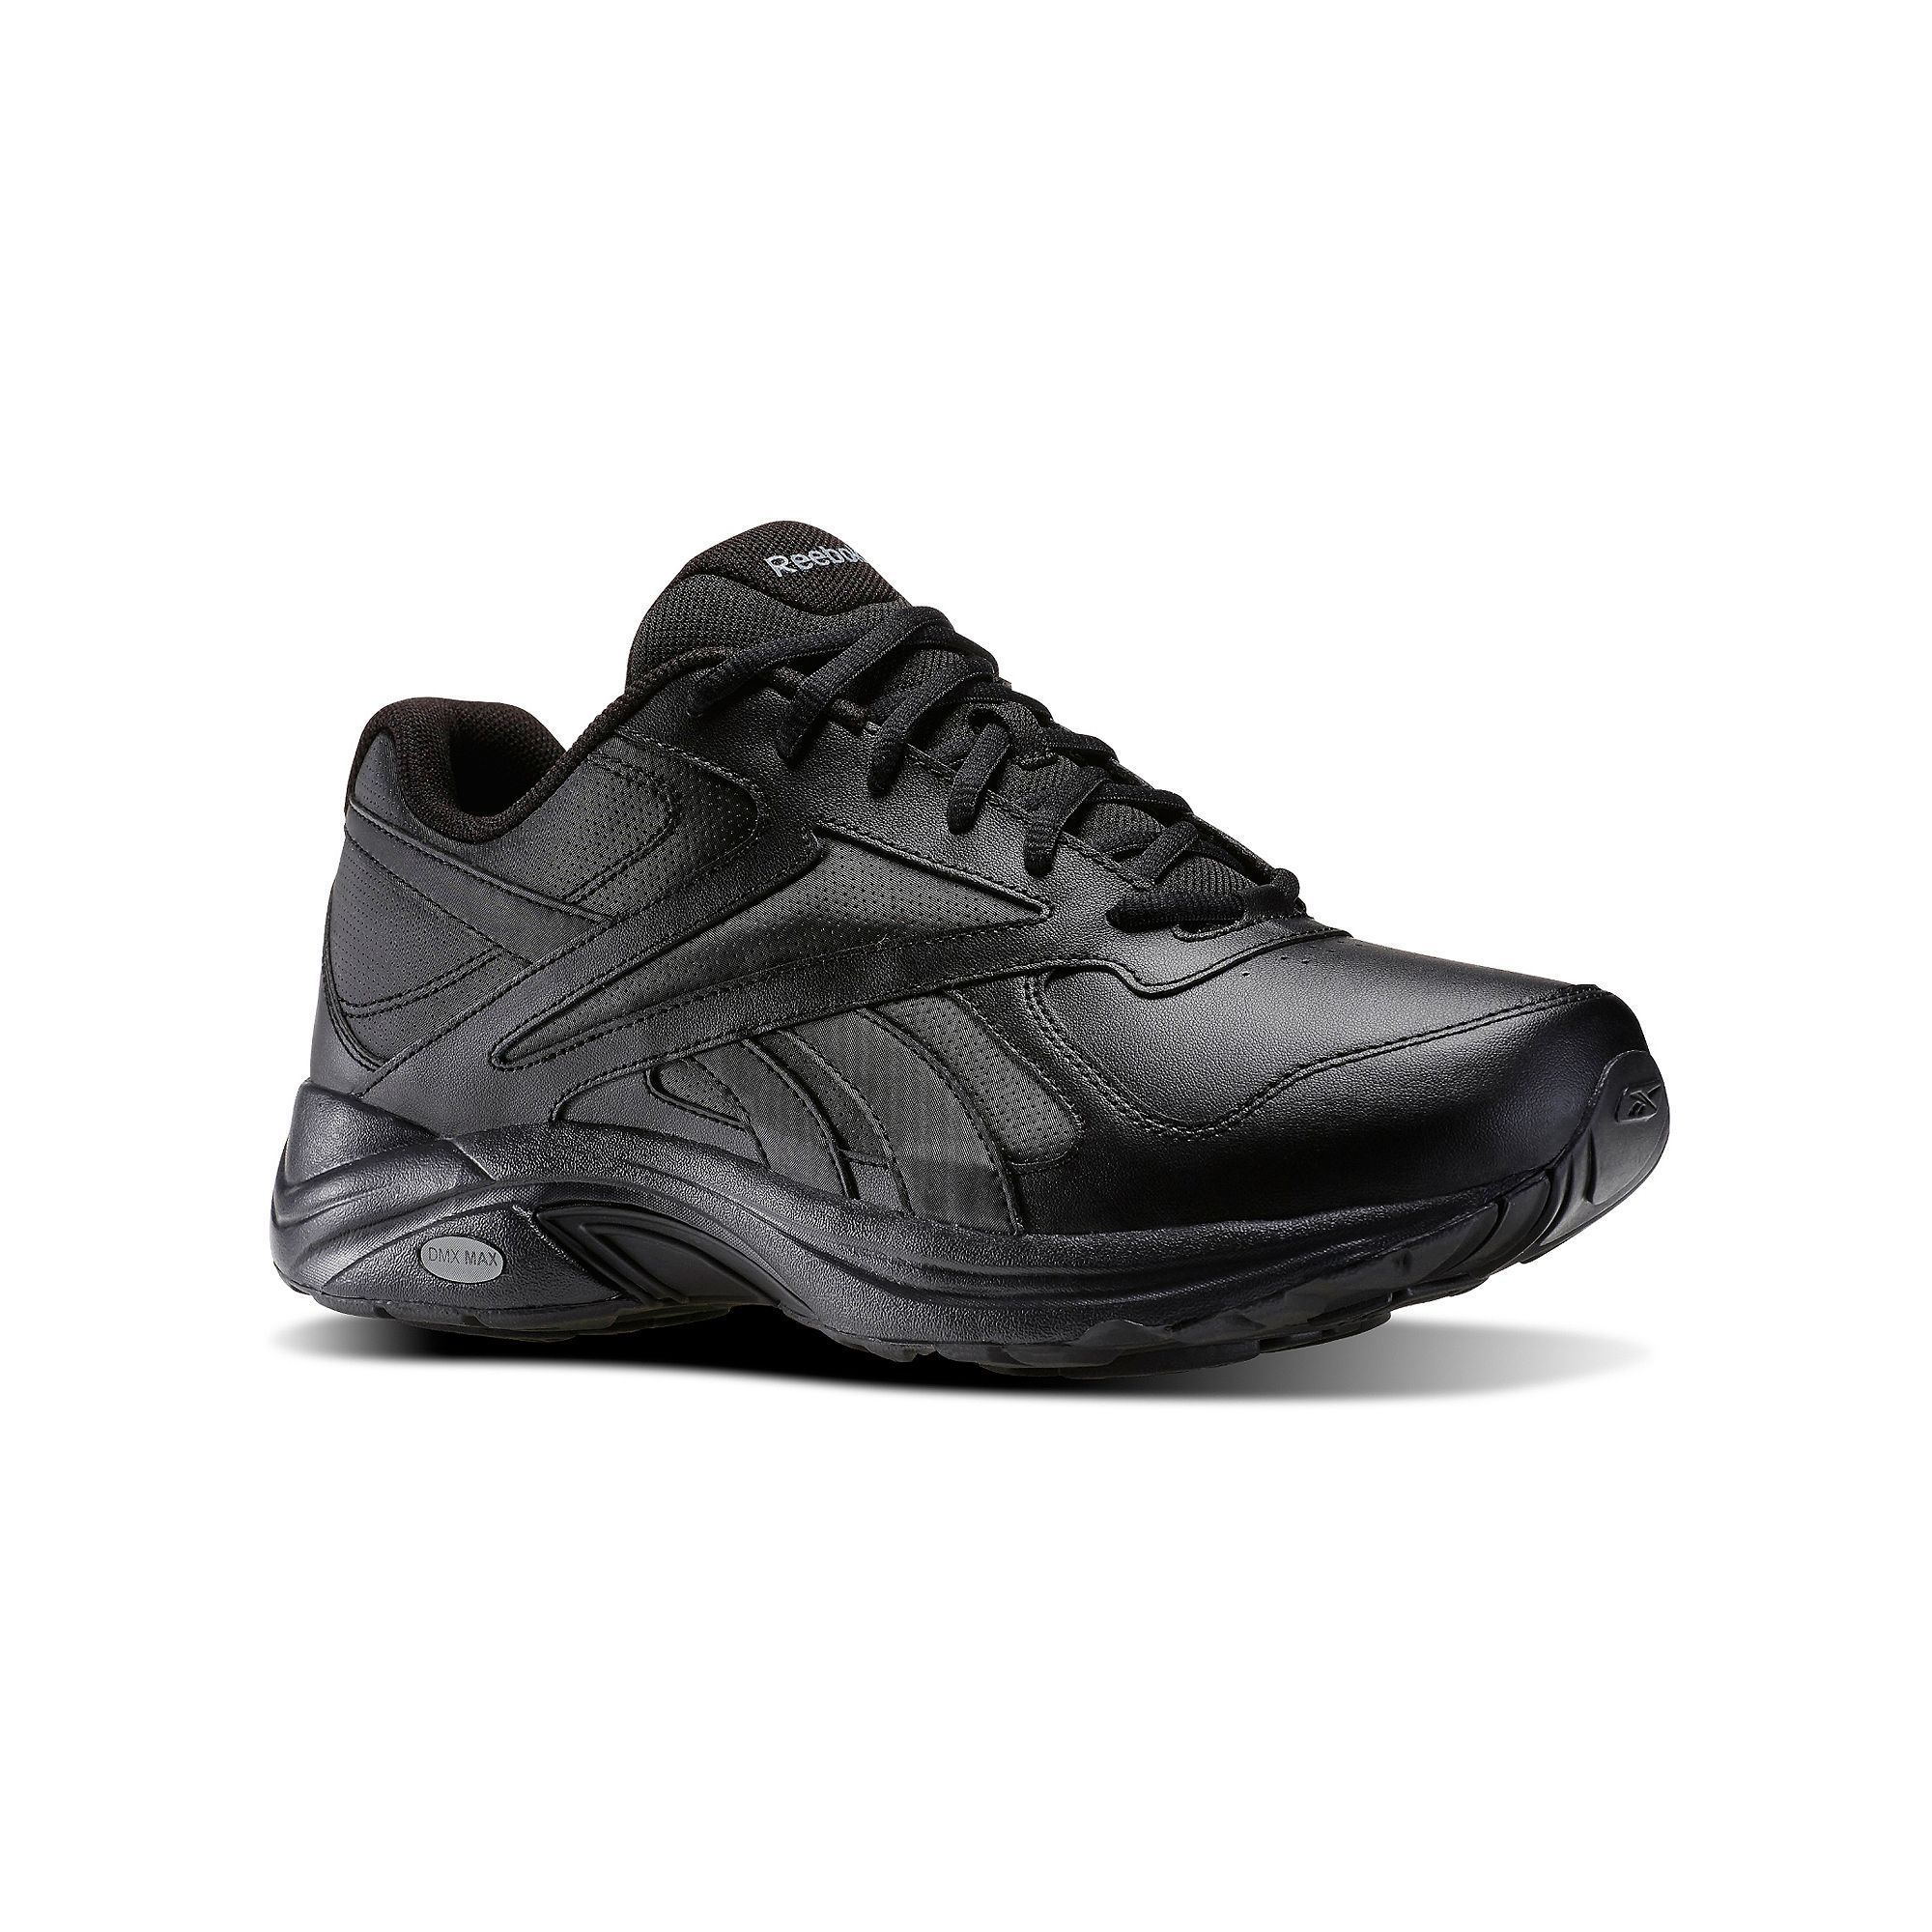 d0ef77fc7f5 Reebok Walk Ultra V DMX Max Men s Walking Shoes